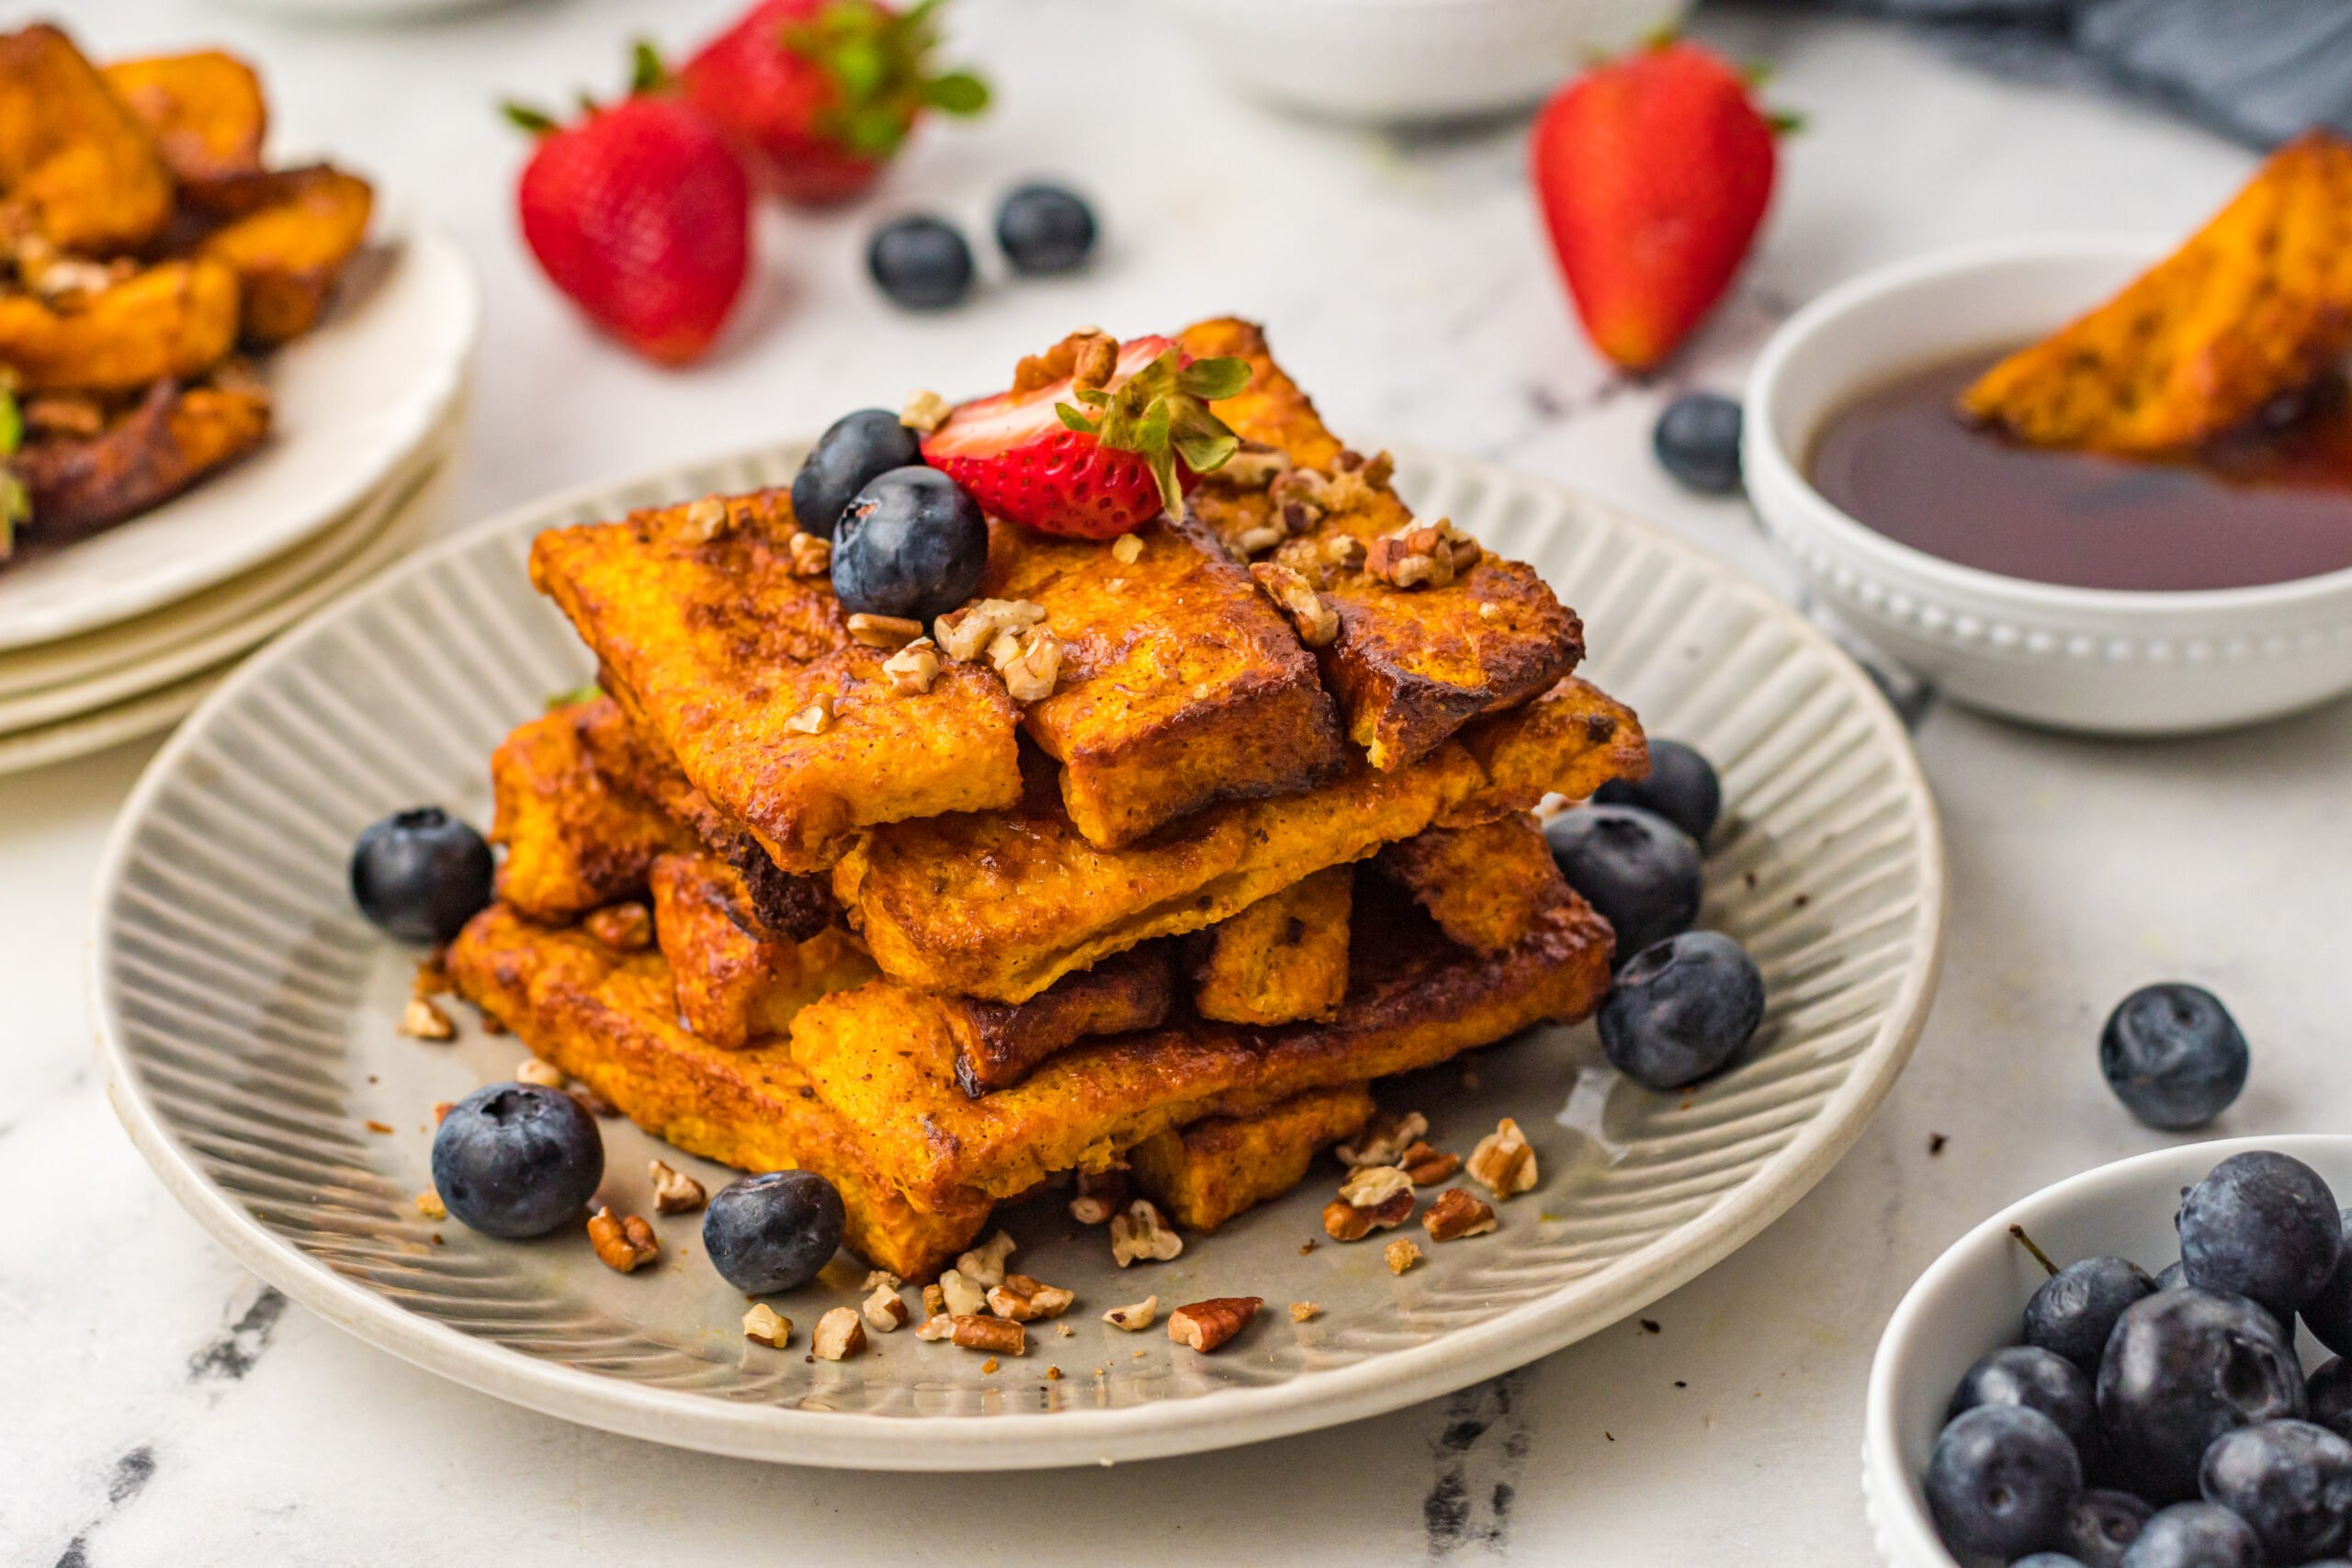 French Toast sticks made in the Air Fryer